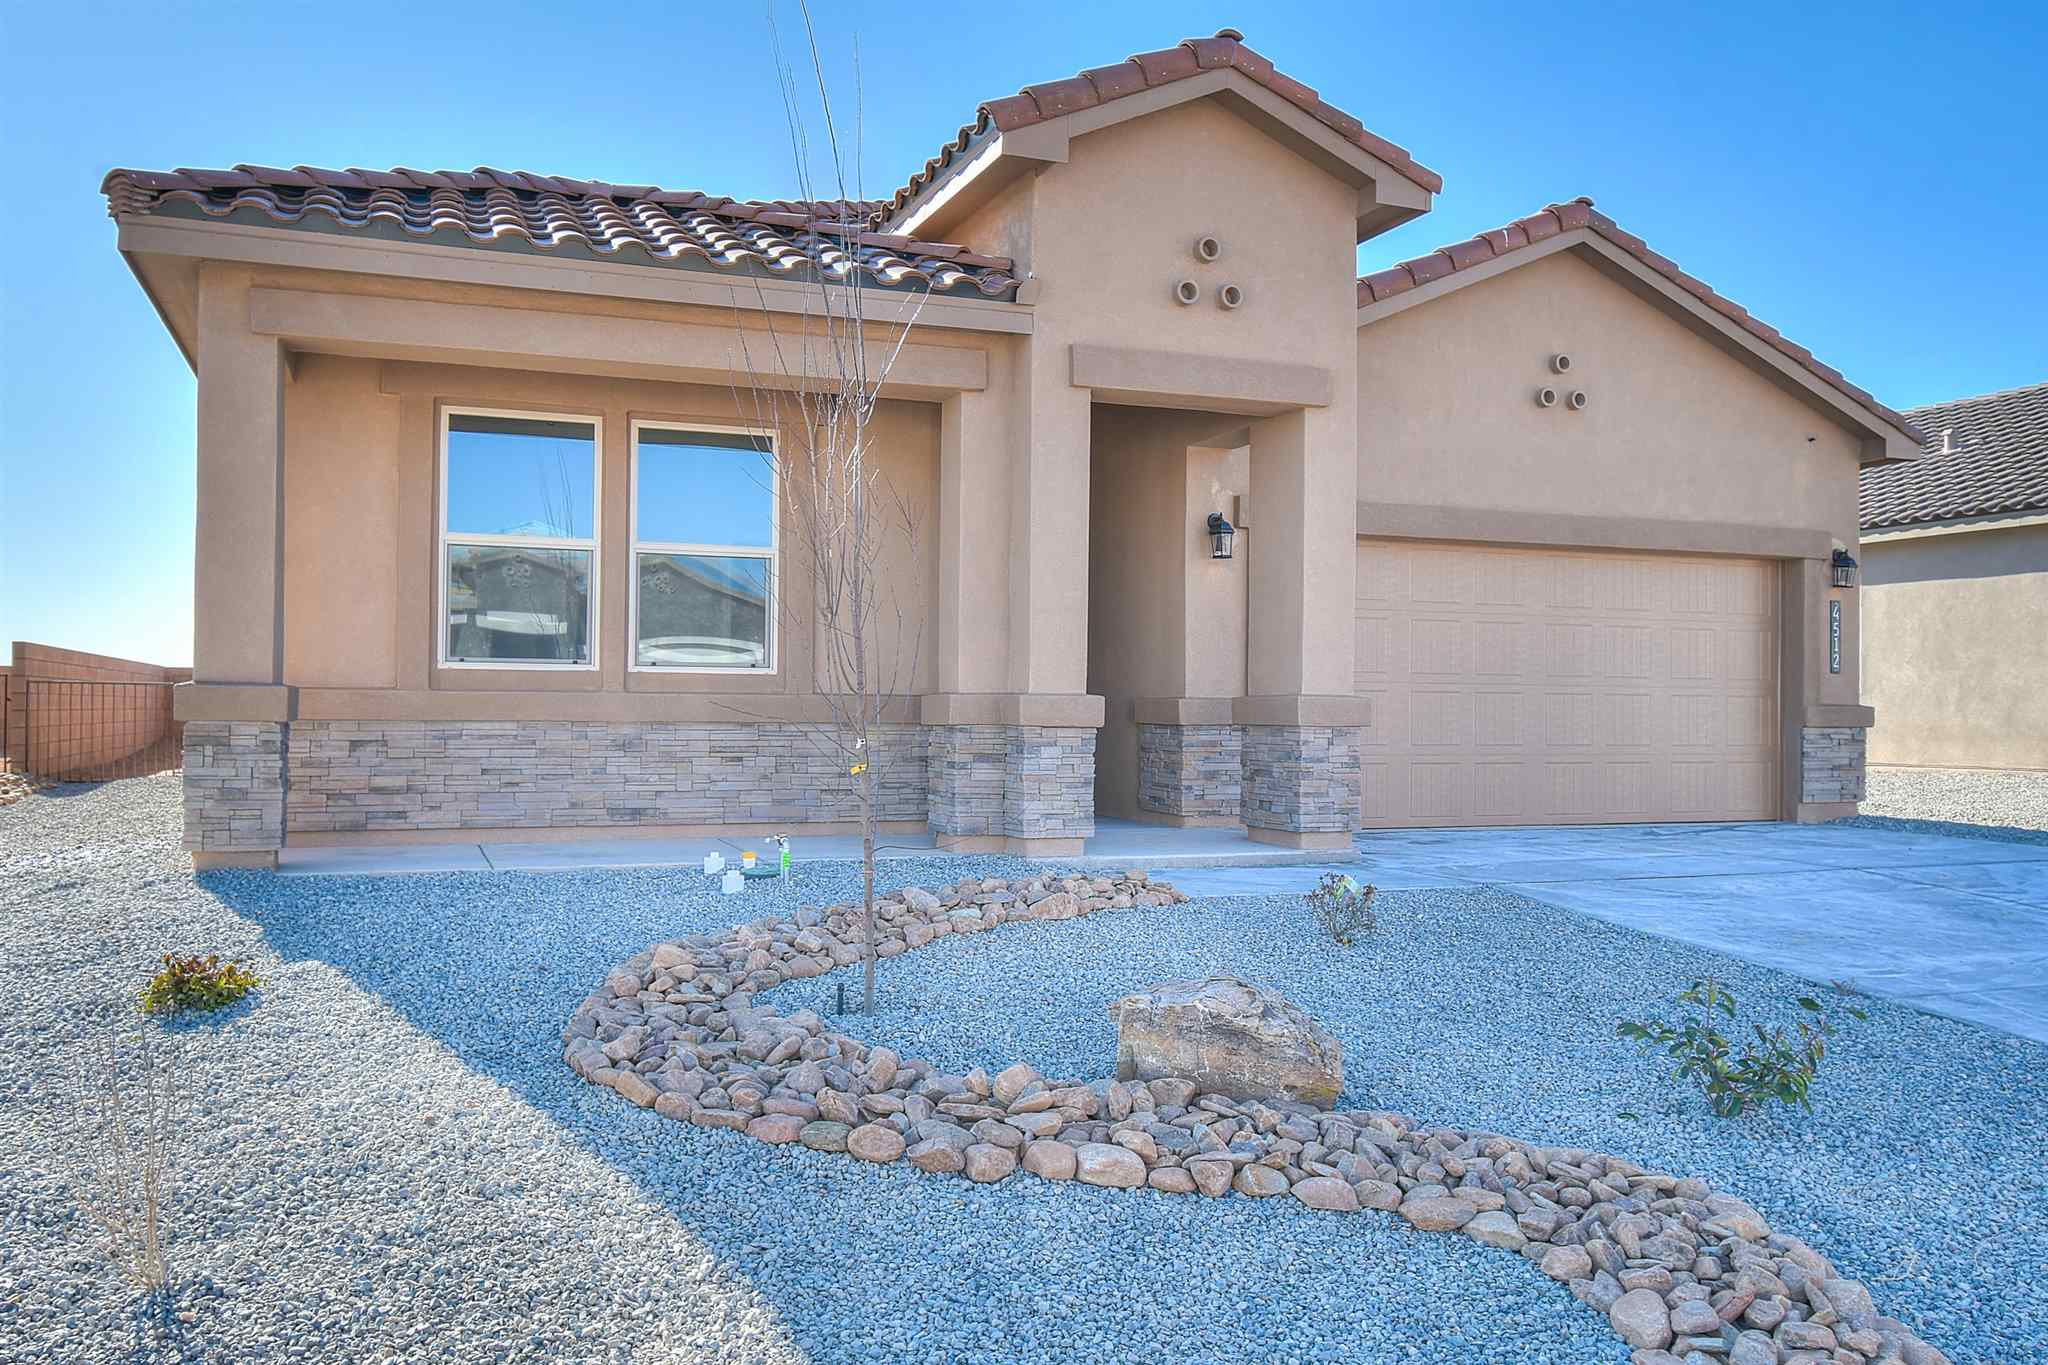 A New Never Lived in Jordan Home Close to city indoor swimming pool, library, soccer fields, ice skating, ''McDermott'' athletic center, shopping, restaurants, hospitals, and entertainment. This 4-bedroom home has a dream kitchen including granite countertops, all new gas appliances, fireplace and an open floorplan. Come see your new home at one of our newest communities in the heart of Rio Rancho